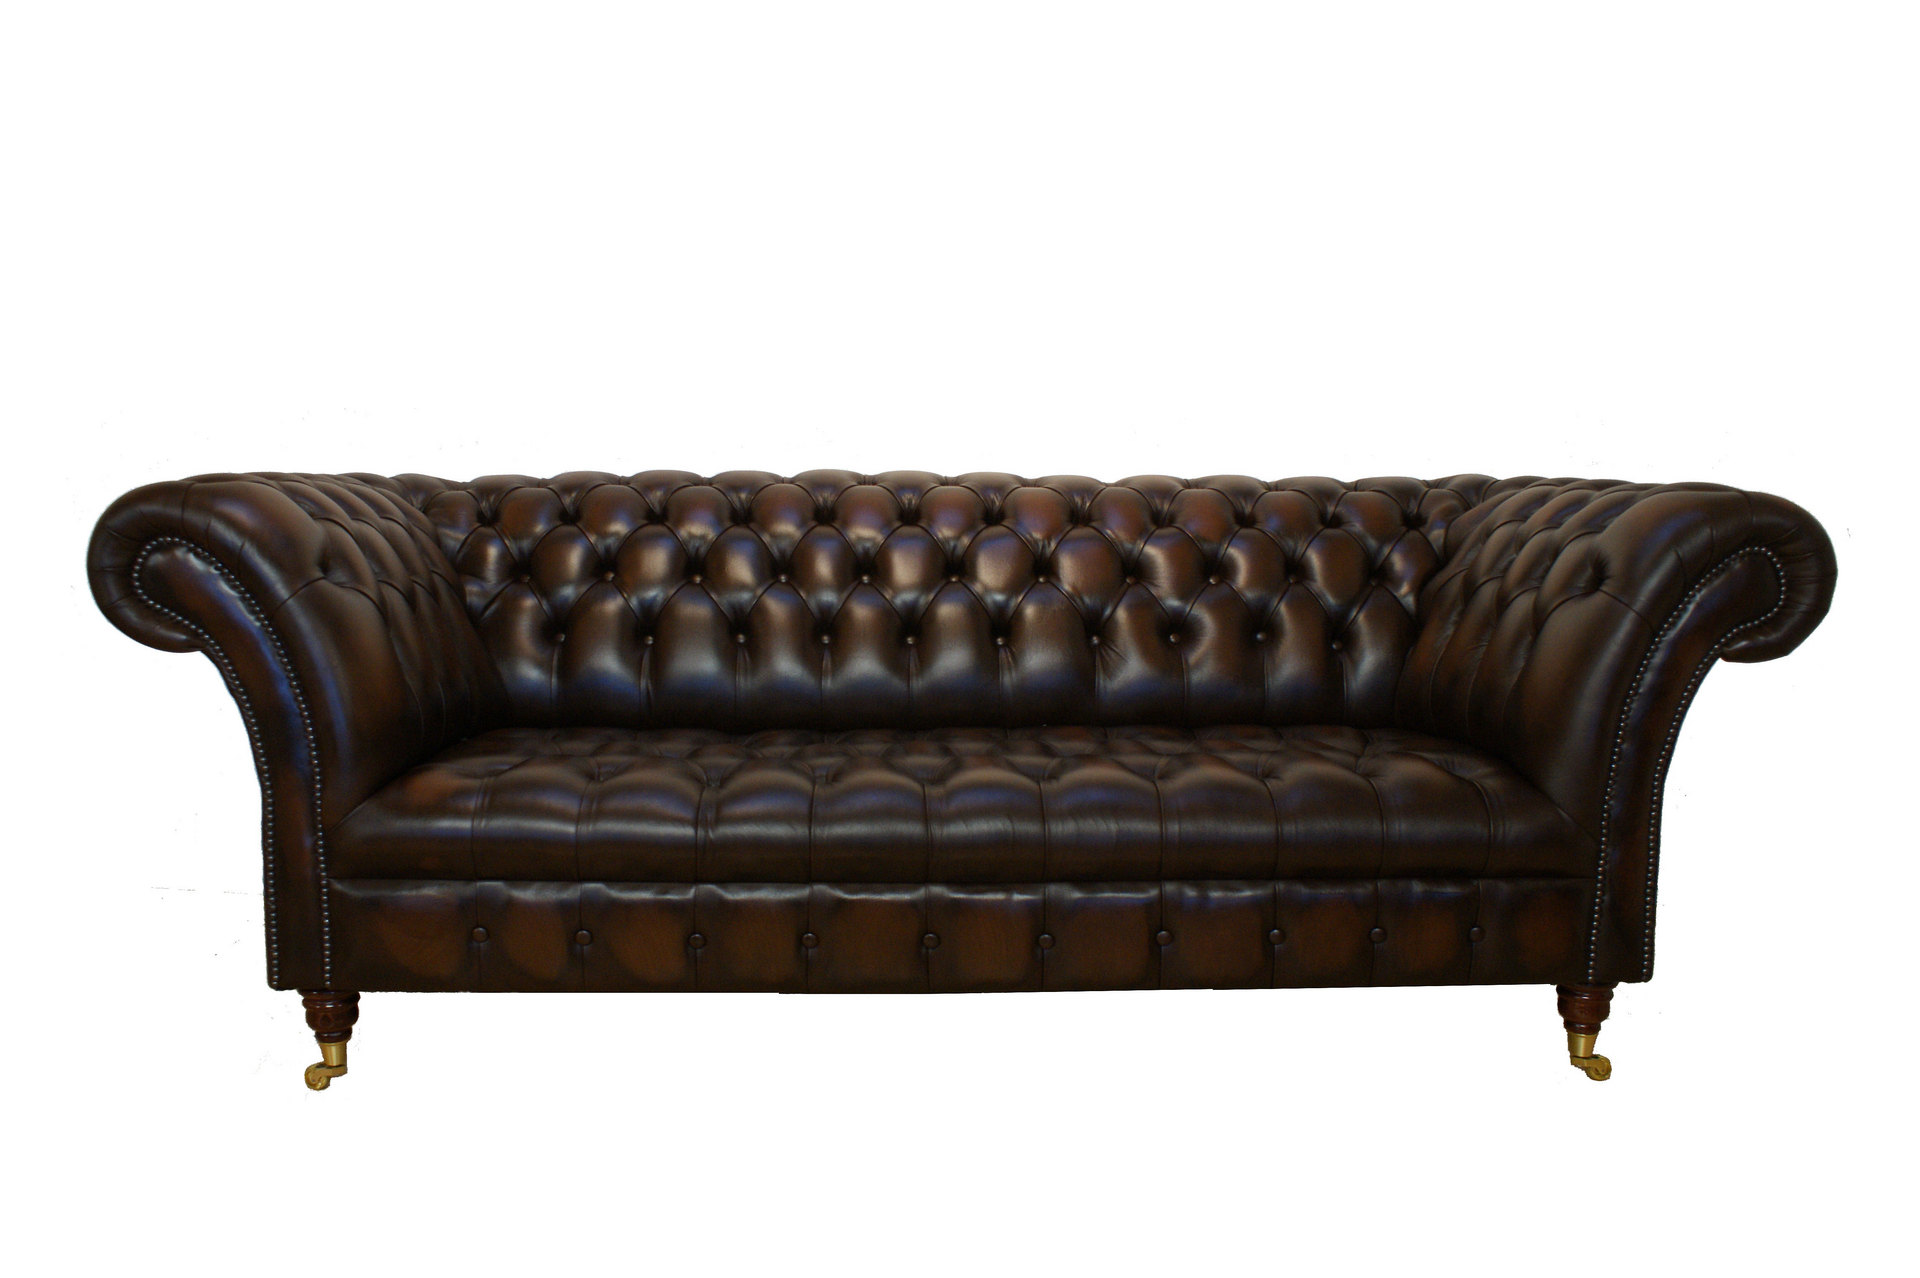 Chesterfield Sofas Chesterfield Leather Sofa